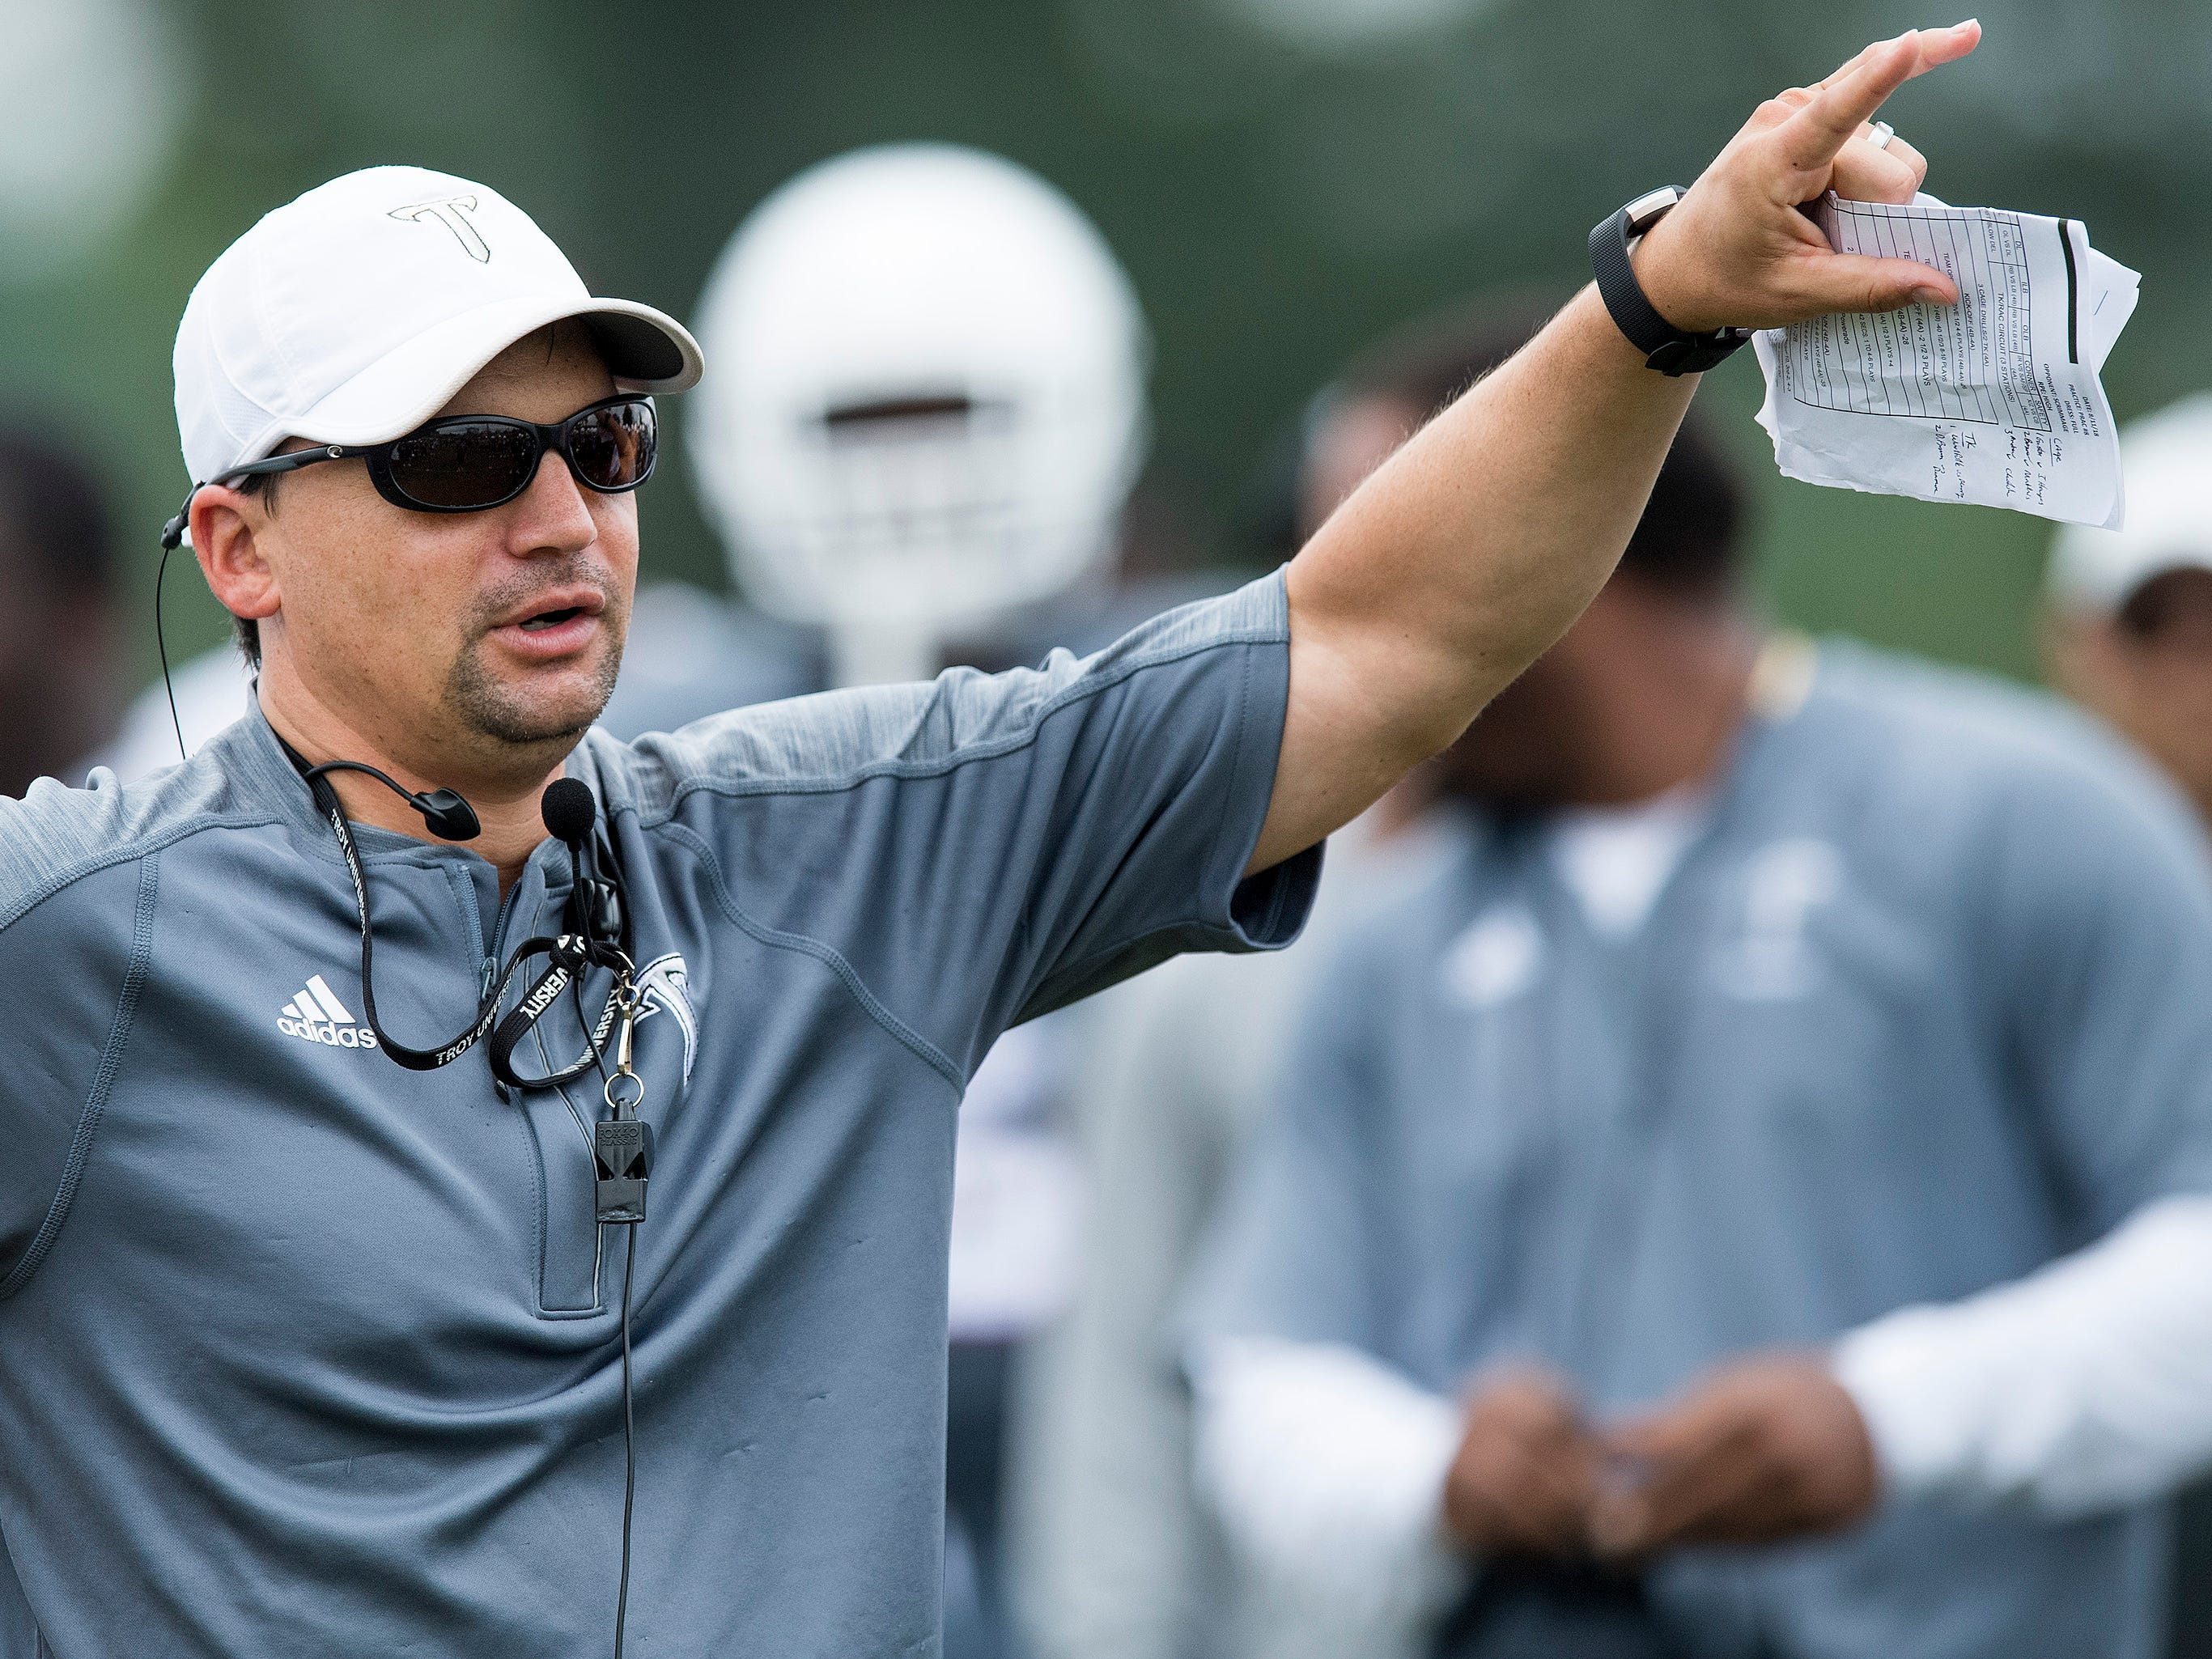 Troy University football coach Neal Brown during the scrimmage in Troy, Ala. on Saturday August 11, 2018.